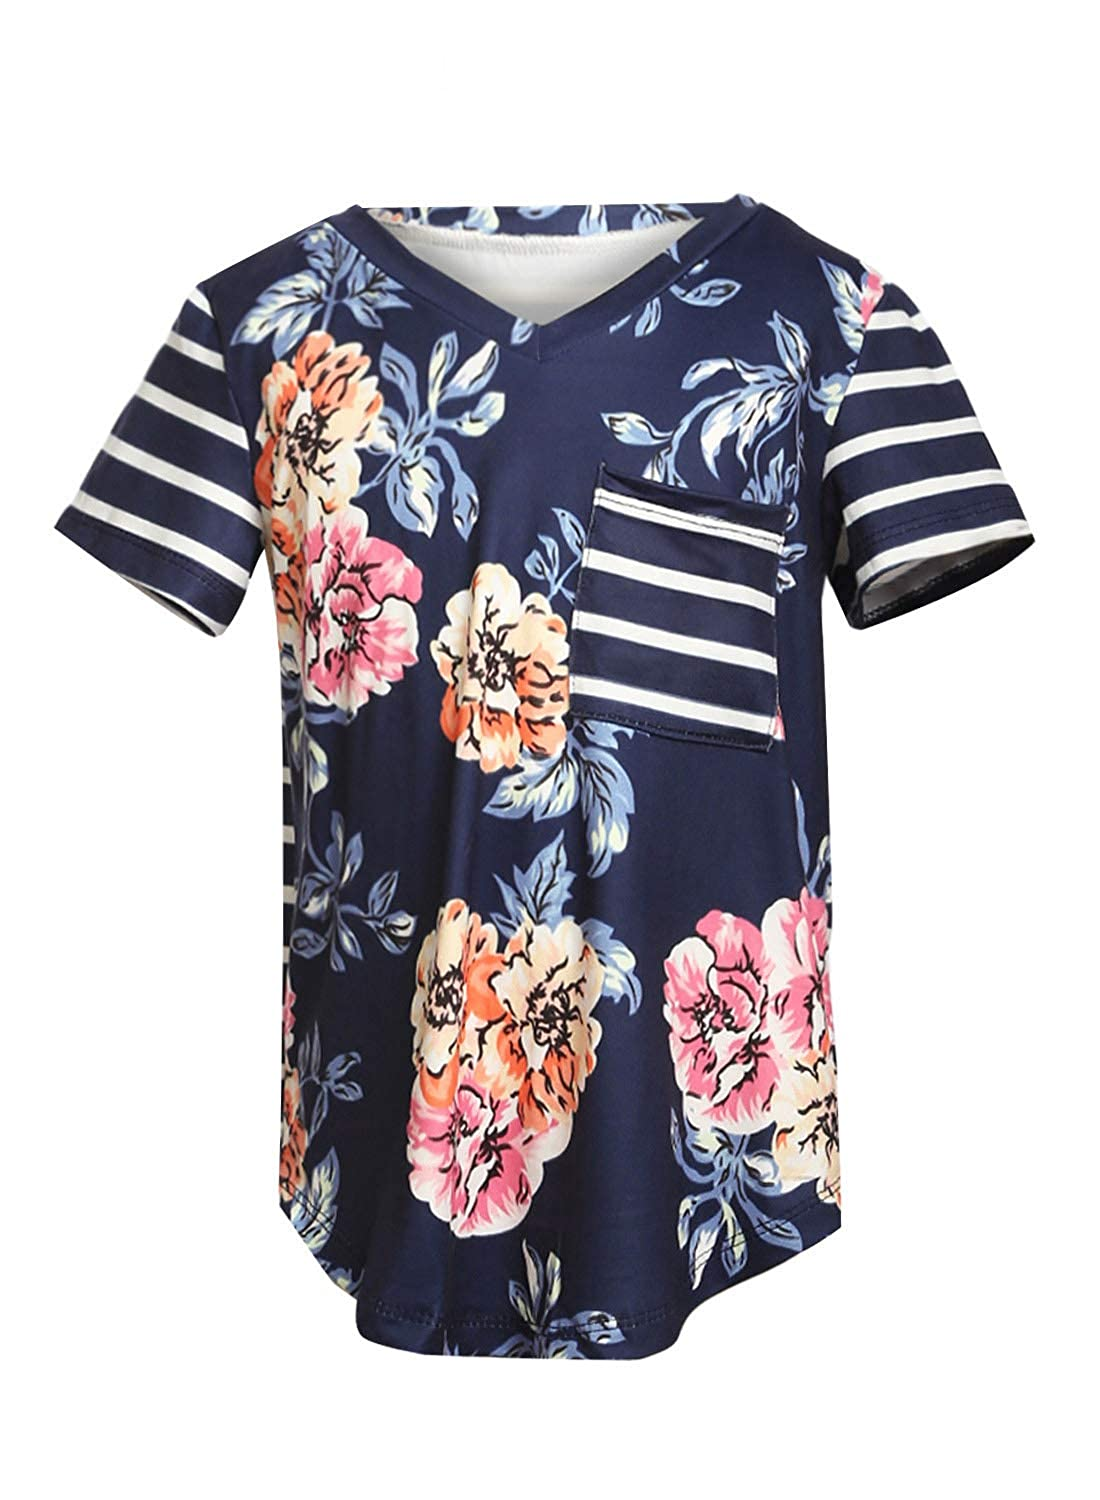 Aleumdr Girls Casual Short Sleeve Floral Striped V Neck T-Shirts Summer Tunic Blouses Tops for 4-13 Years